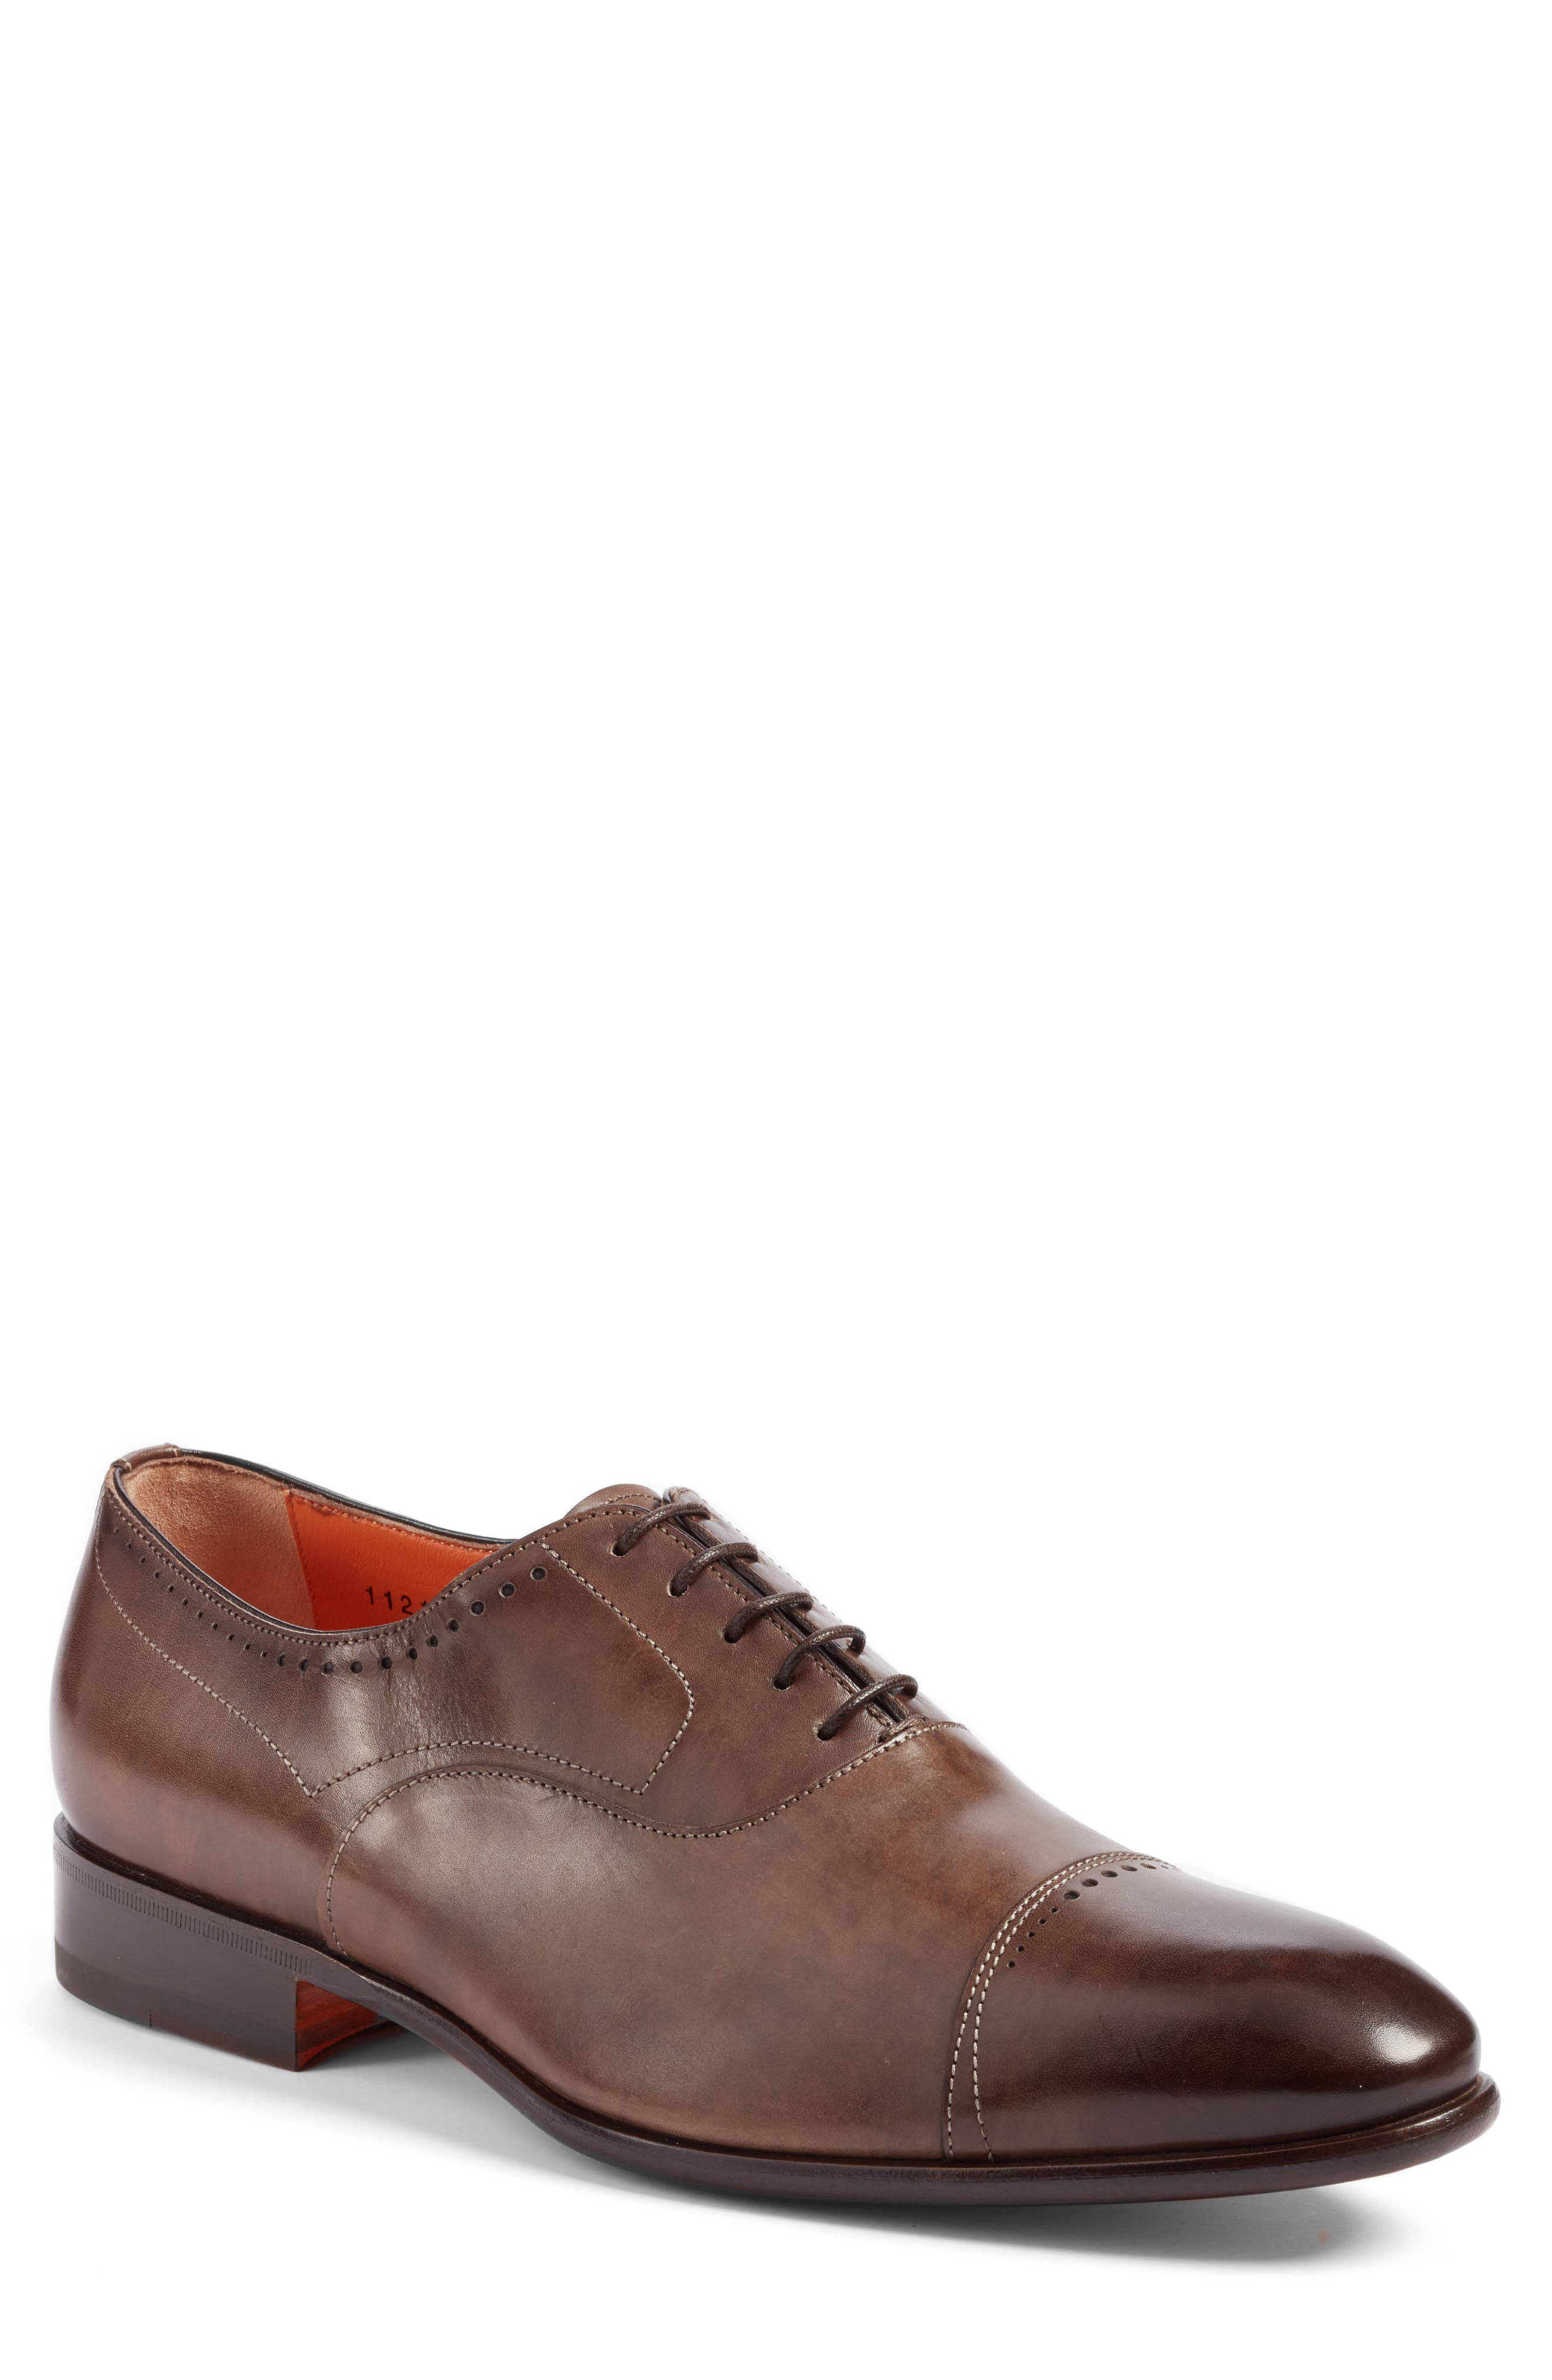 Thurman Cap Toe Oxford,                             Main thumbnail 1, color,